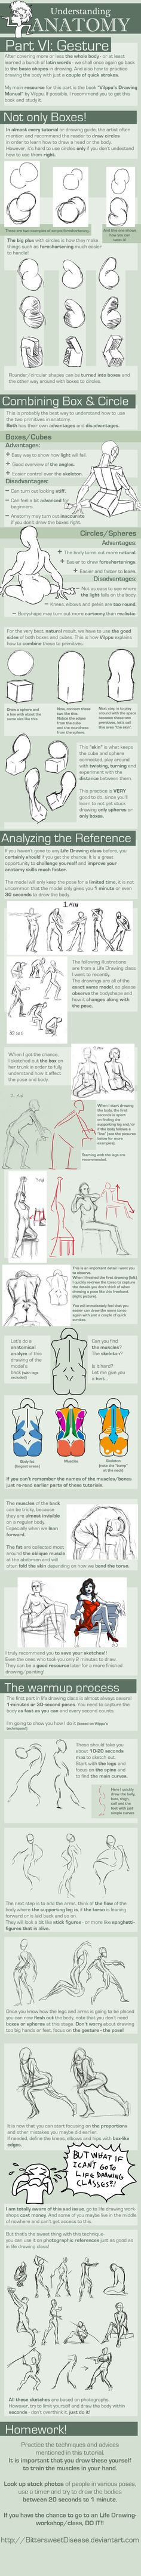 UNDERSTANDING ANATOMY: part VI by =FOERVRAENGD on deviantART